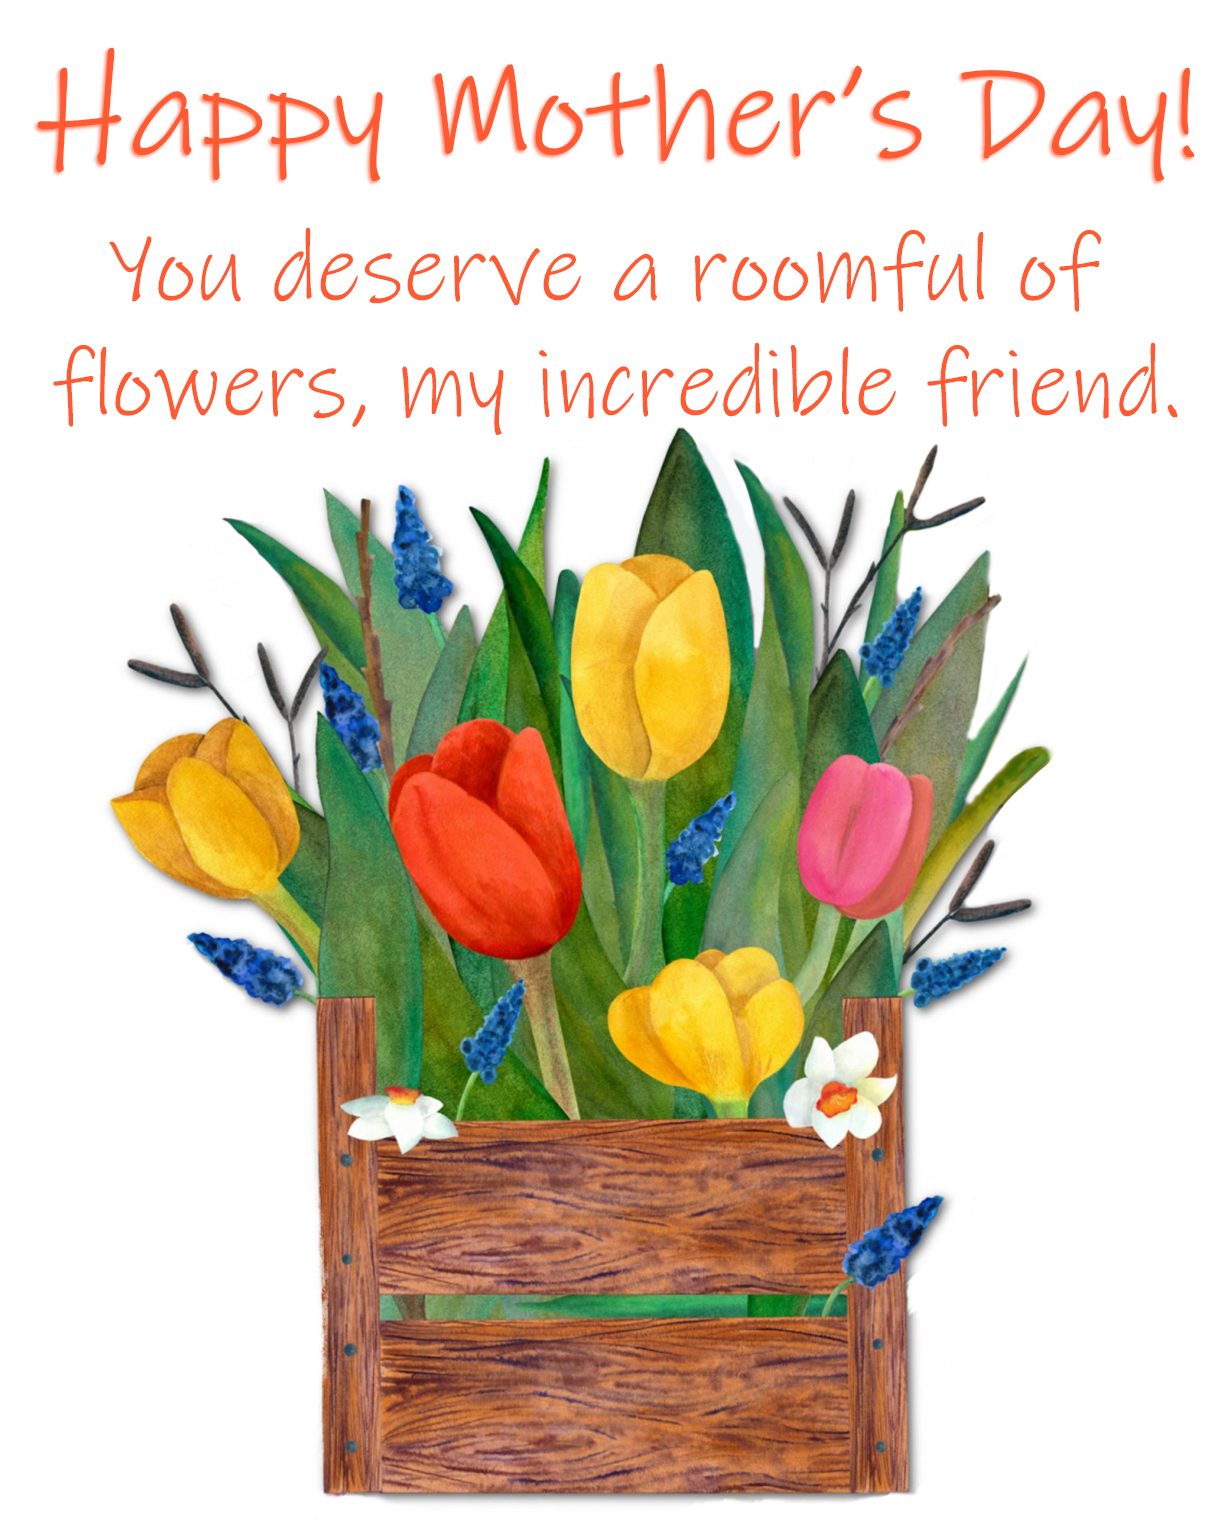 greeting for my incredible friend mother's day